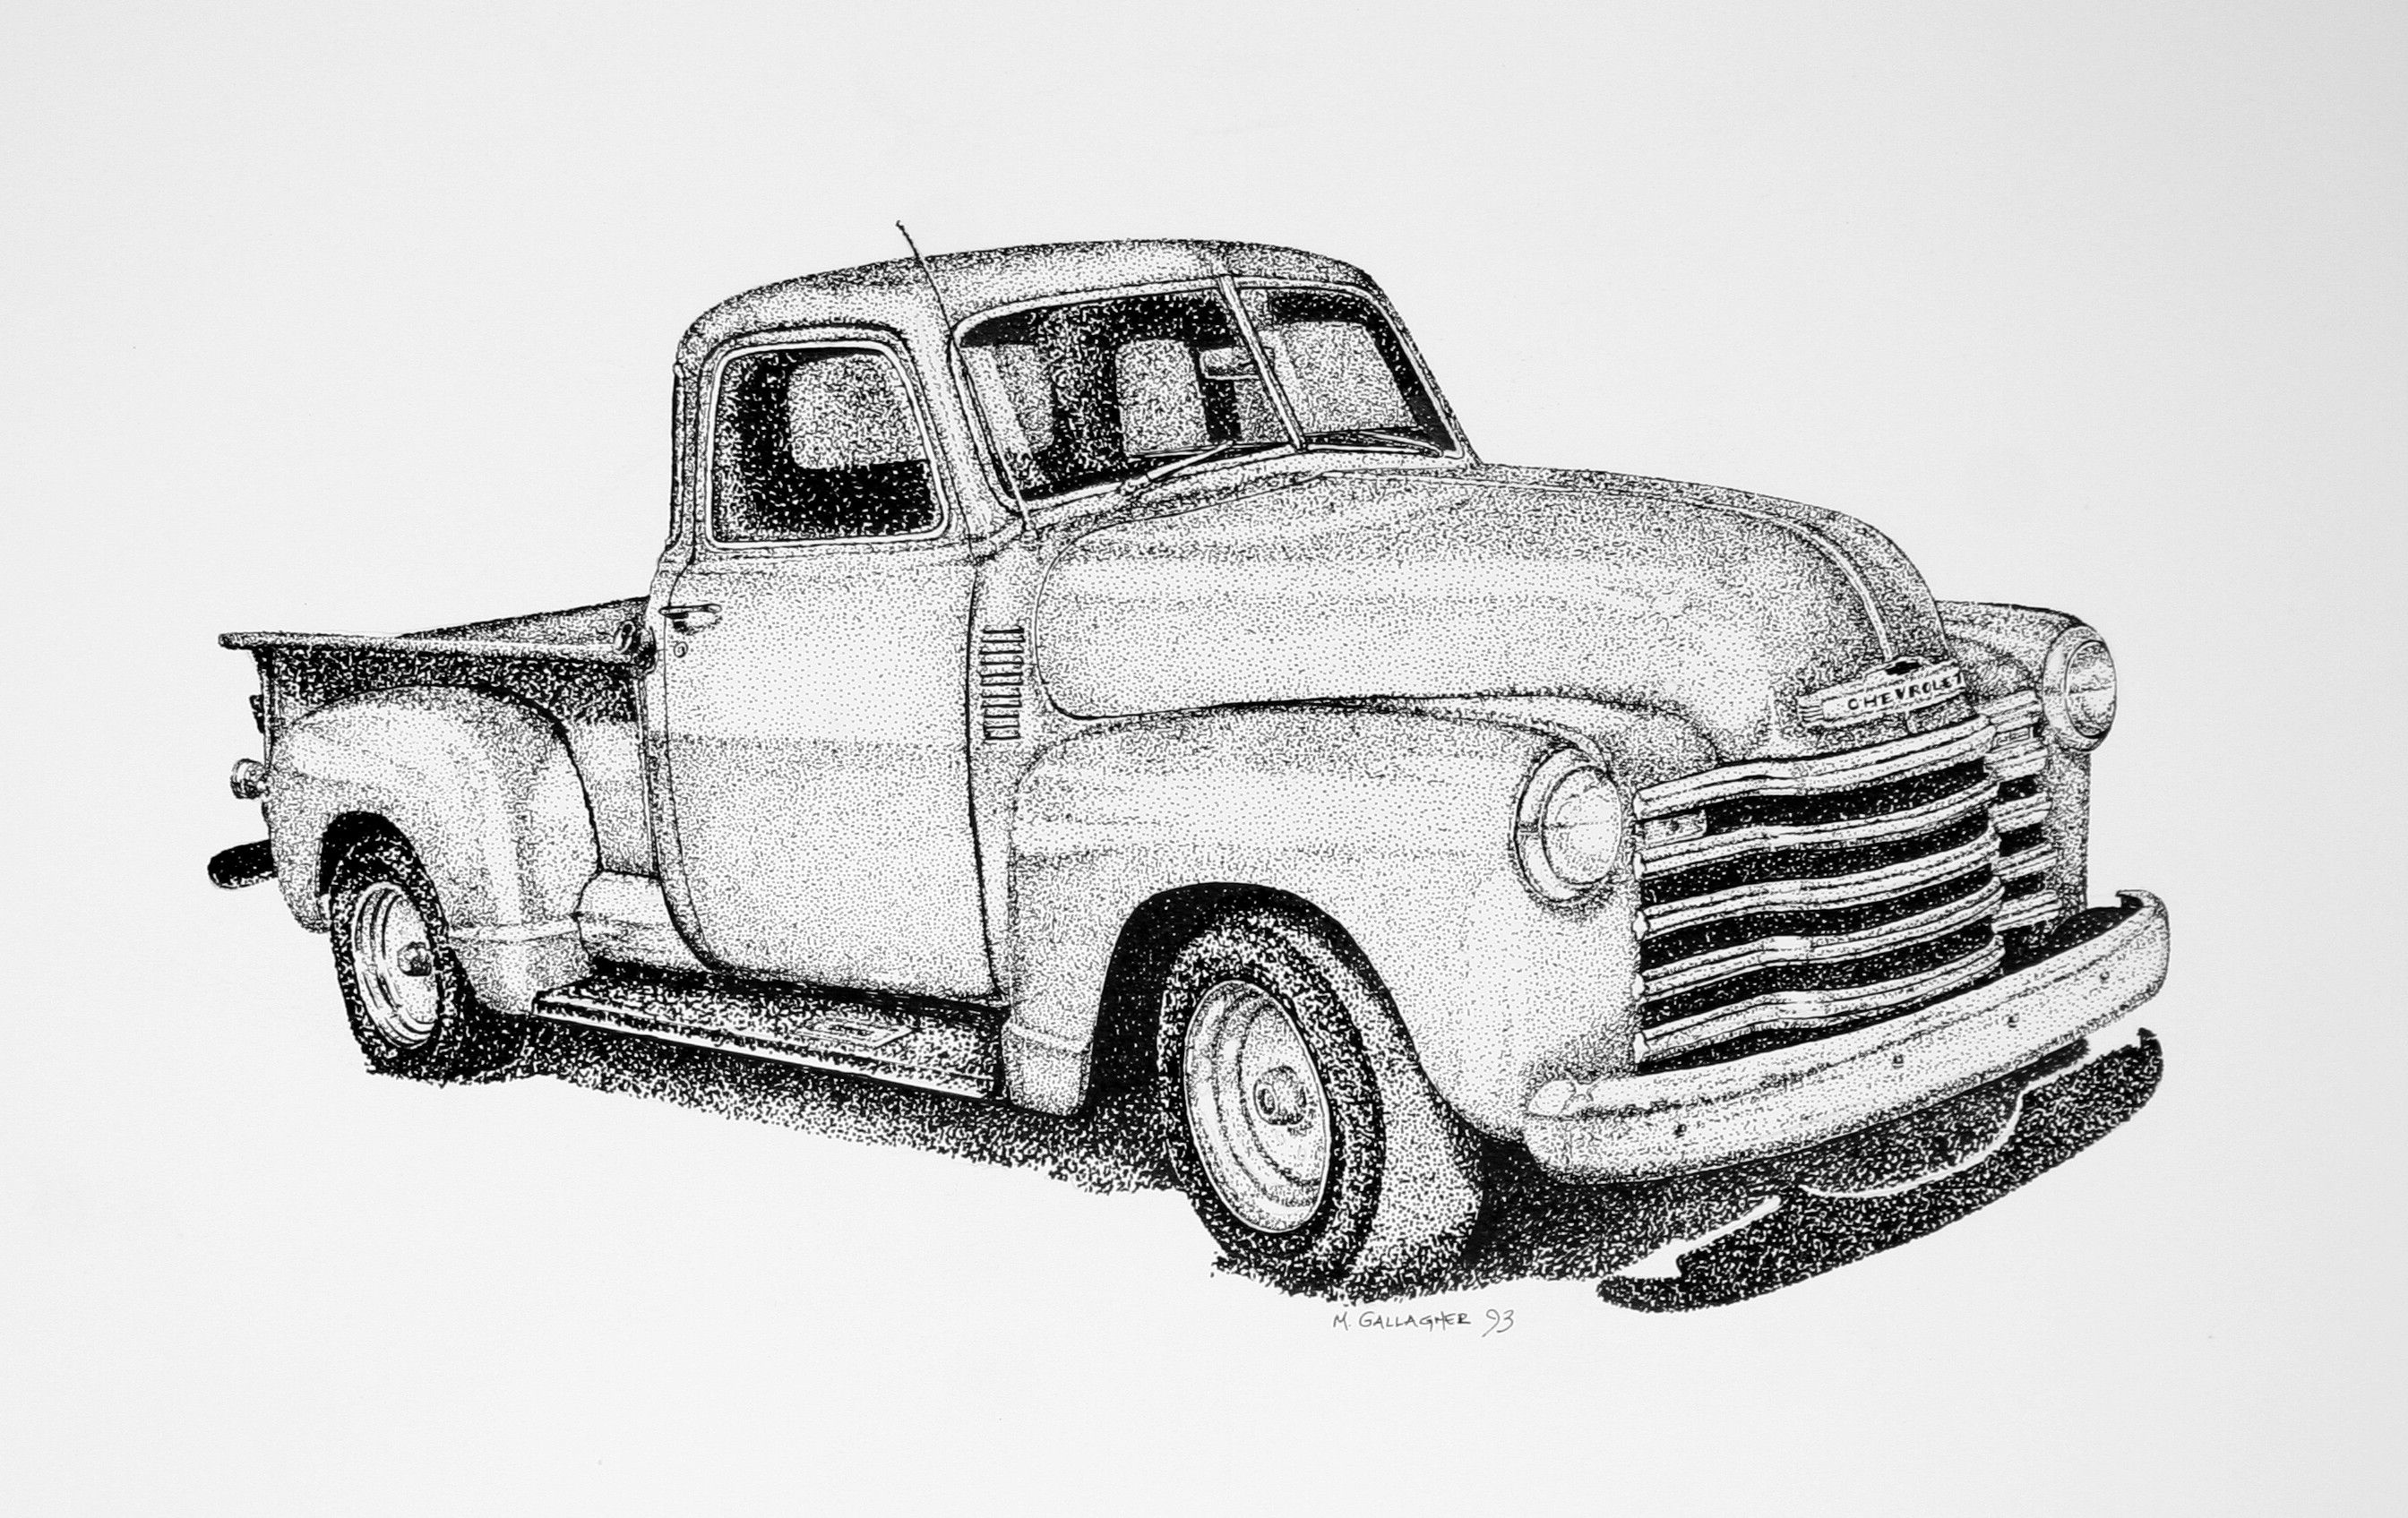 pickup truck sketch gallery auto art chevy truck sketches chevy trucks trucks chevy. Black Bedroom Furniture Sets. Home Design Ideas